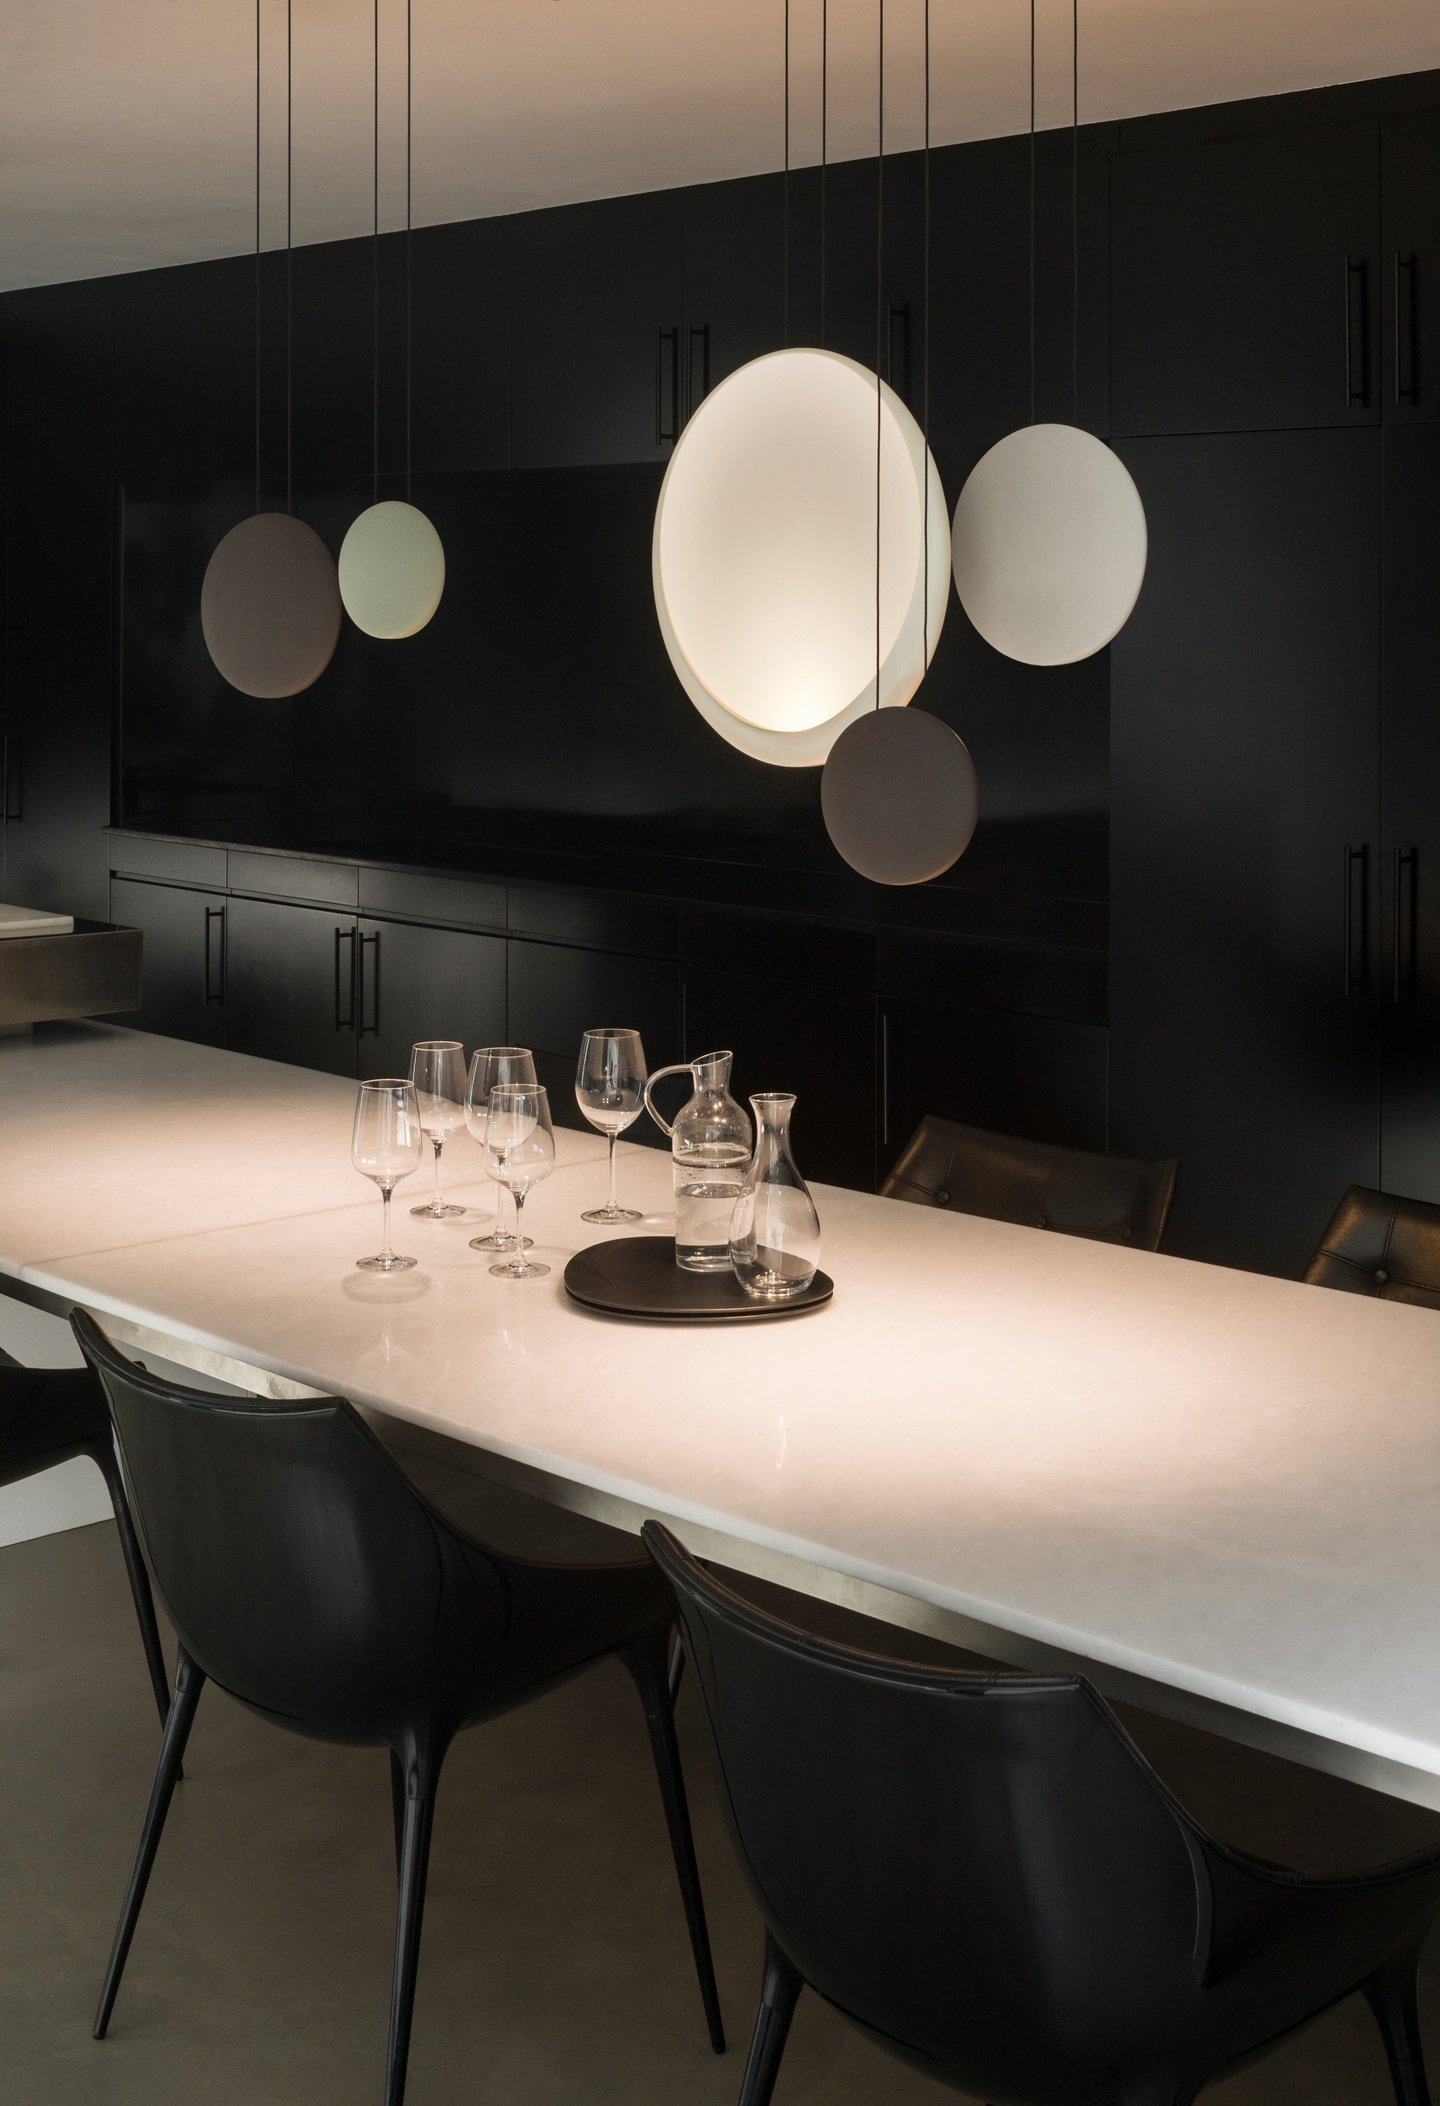 Previous & Cosmos 3 light chandelier by Vibia by ECC